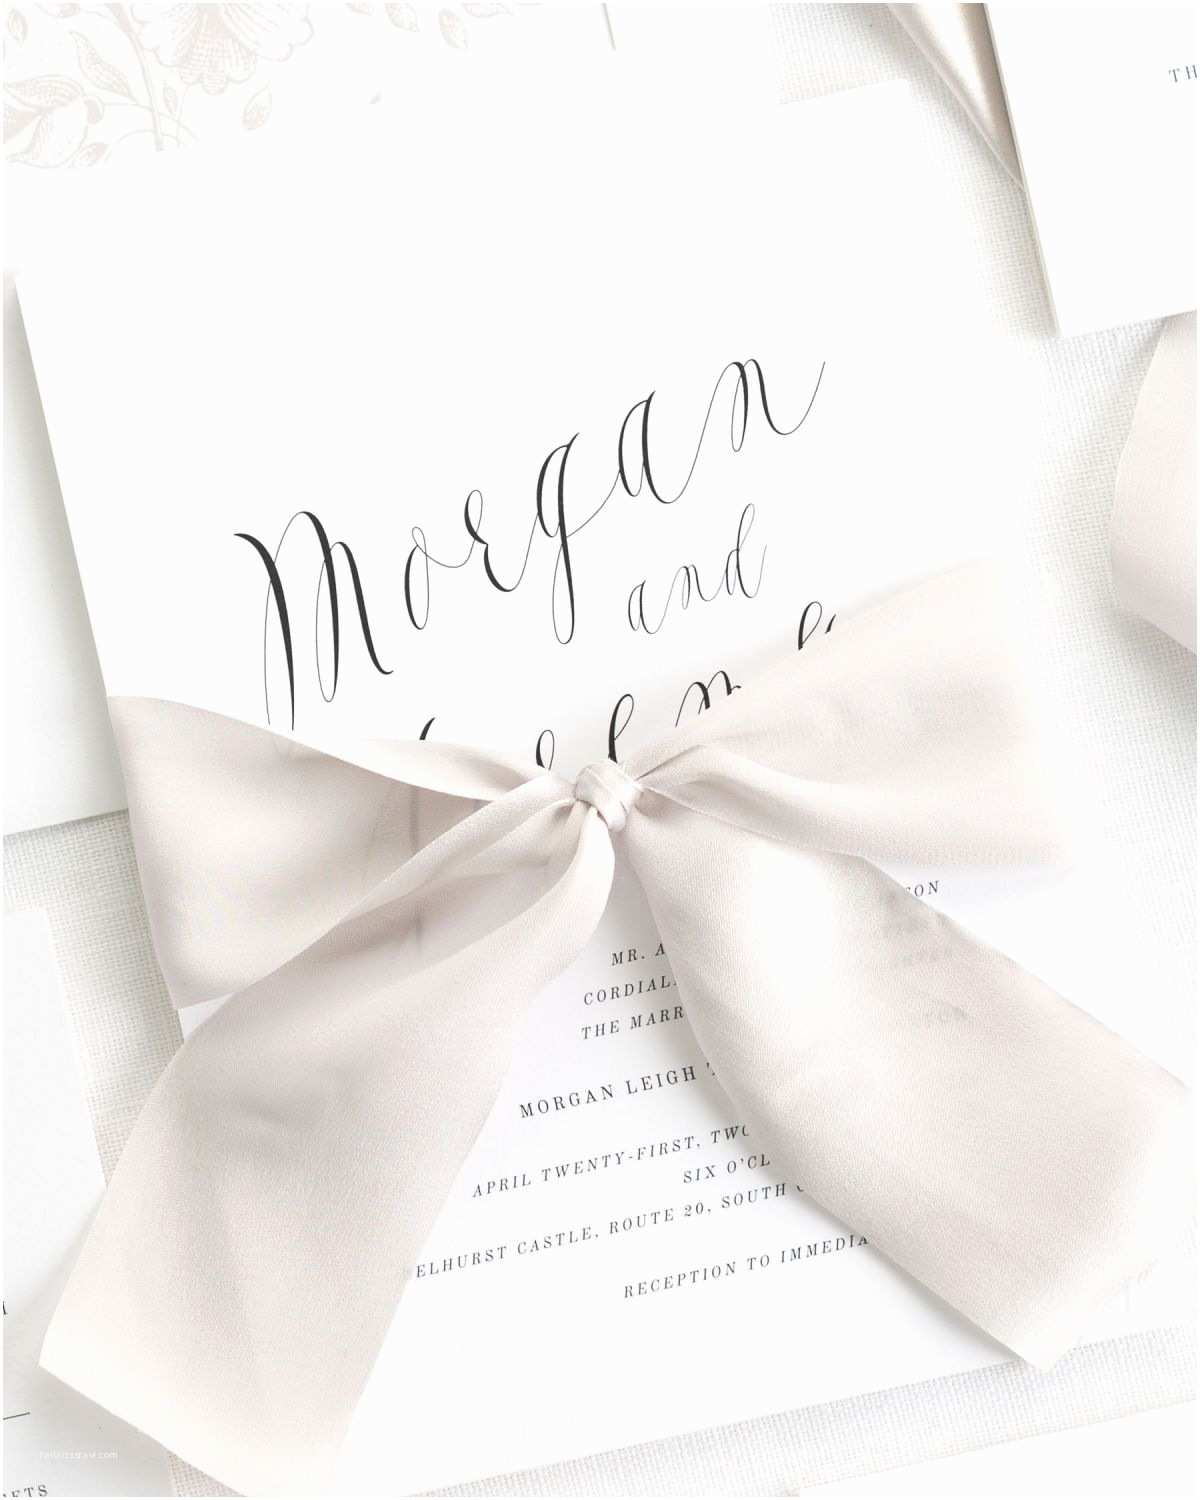 Wedding Invitations with Ribbon Ethereal Calligraphy Ribbon Wedding Invitations Ribbon